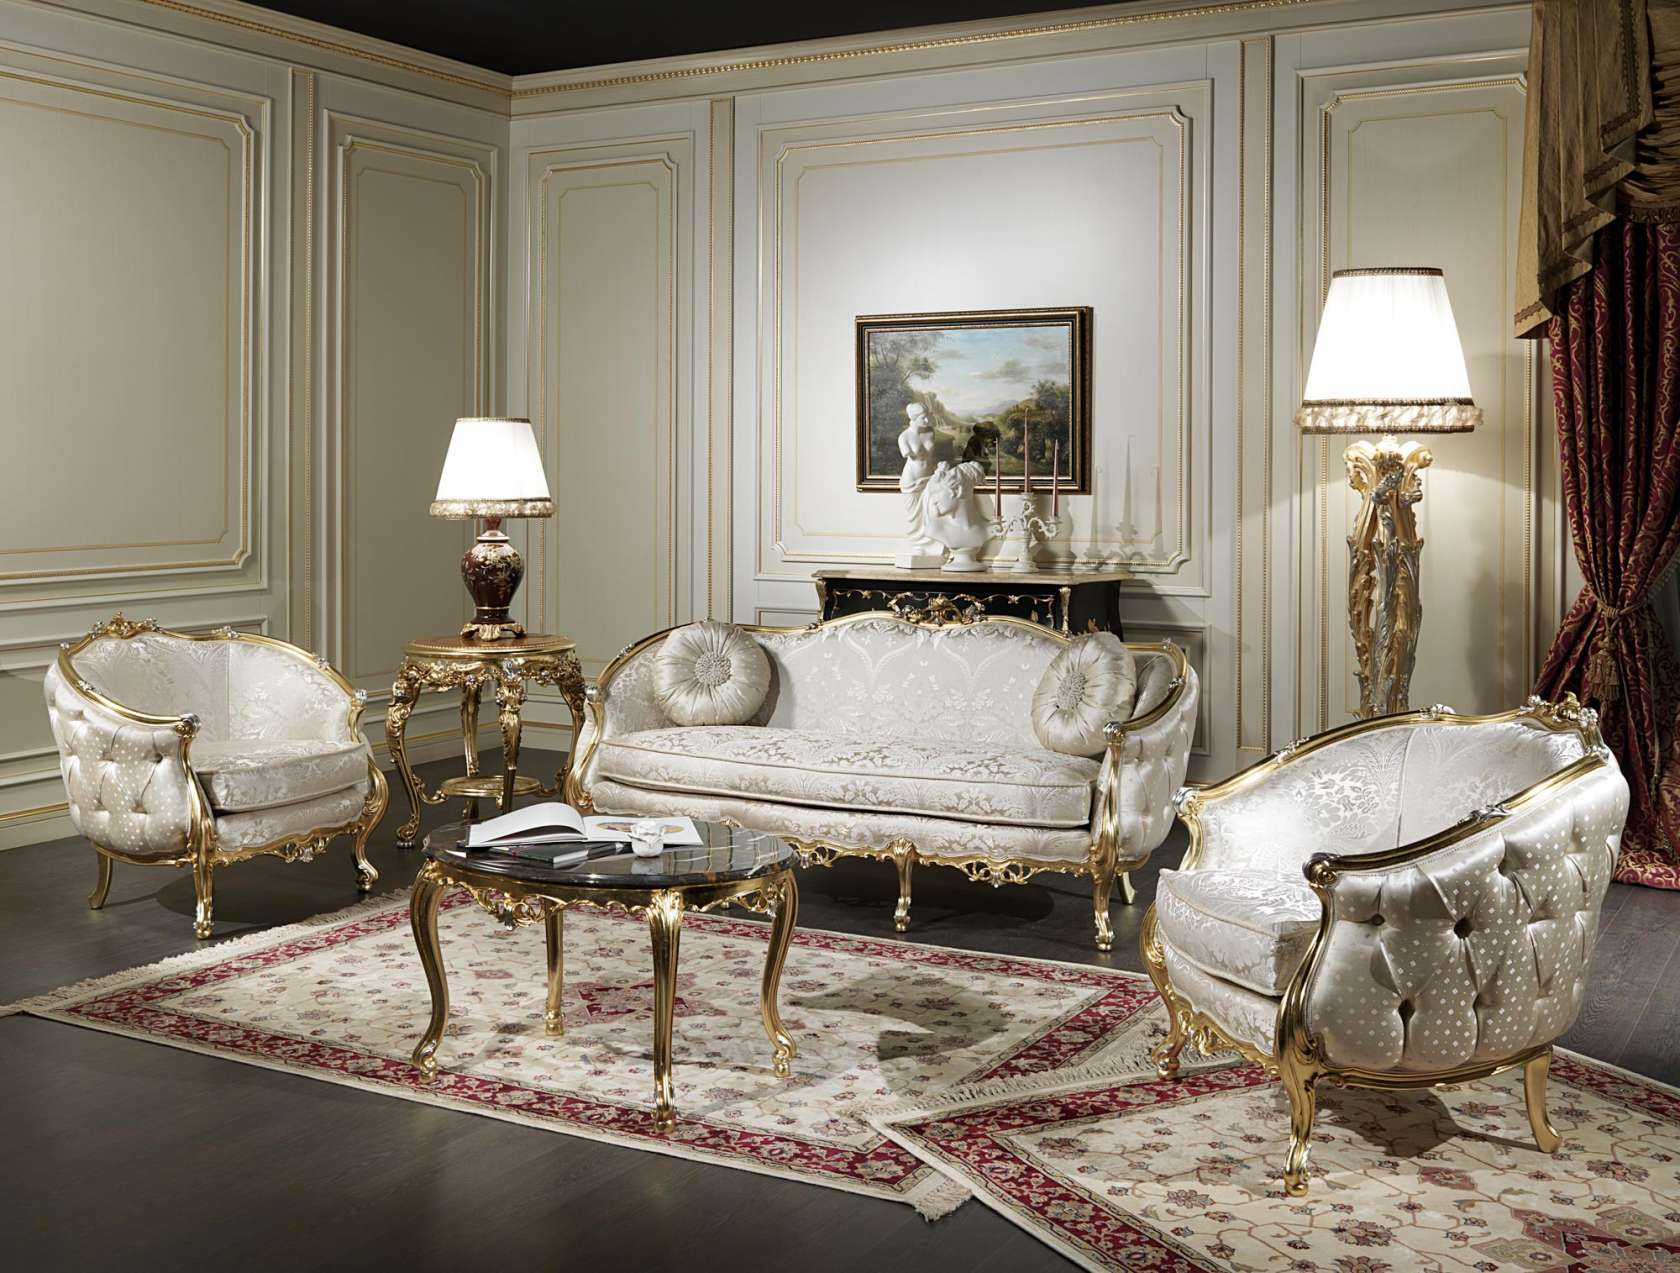 Italian Living Room italian classic living room venezia | vimercati classic furniture